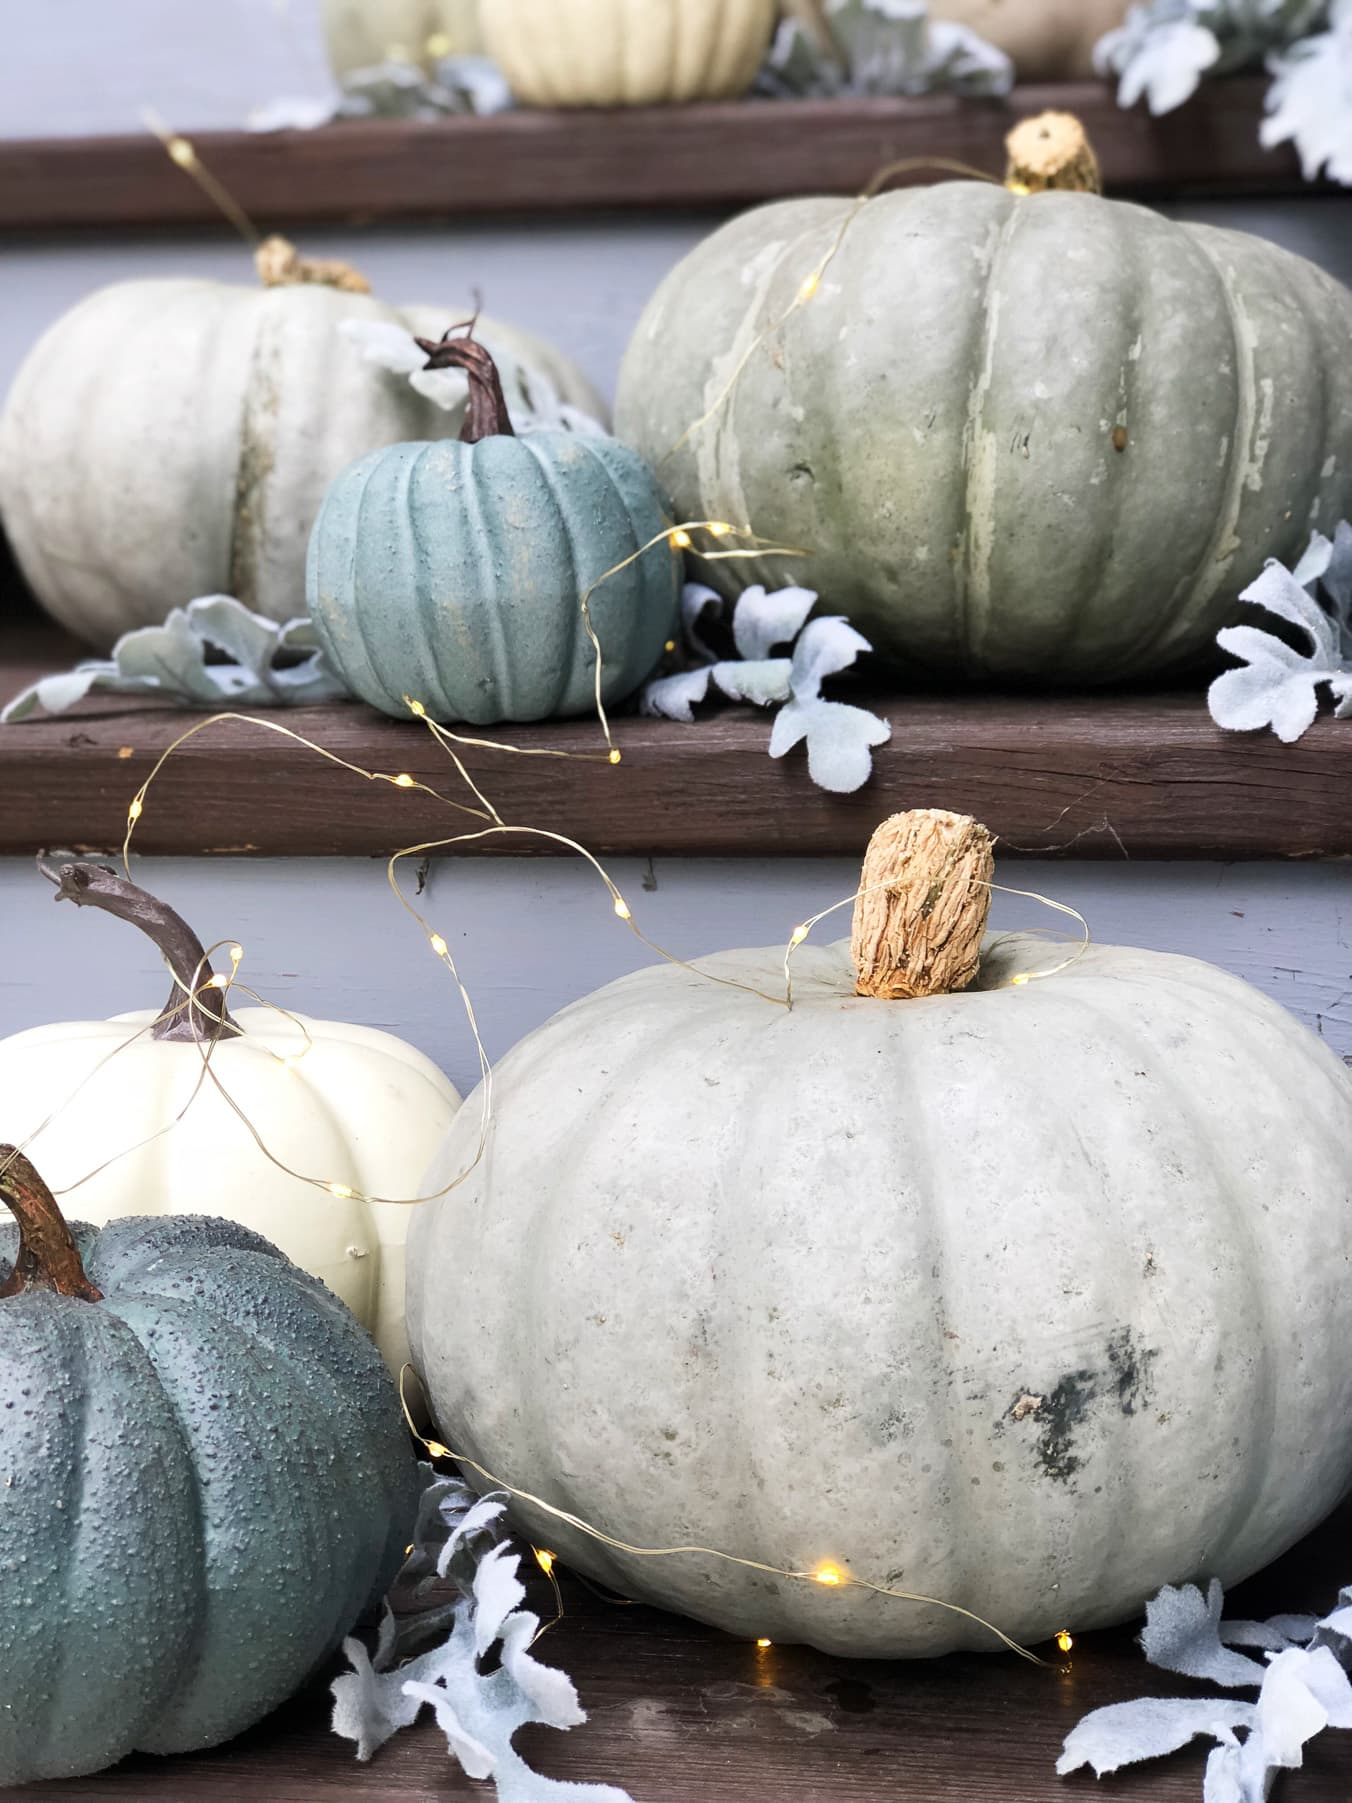 A set of stairs full of grey and blue pumpkins and twinkly lights